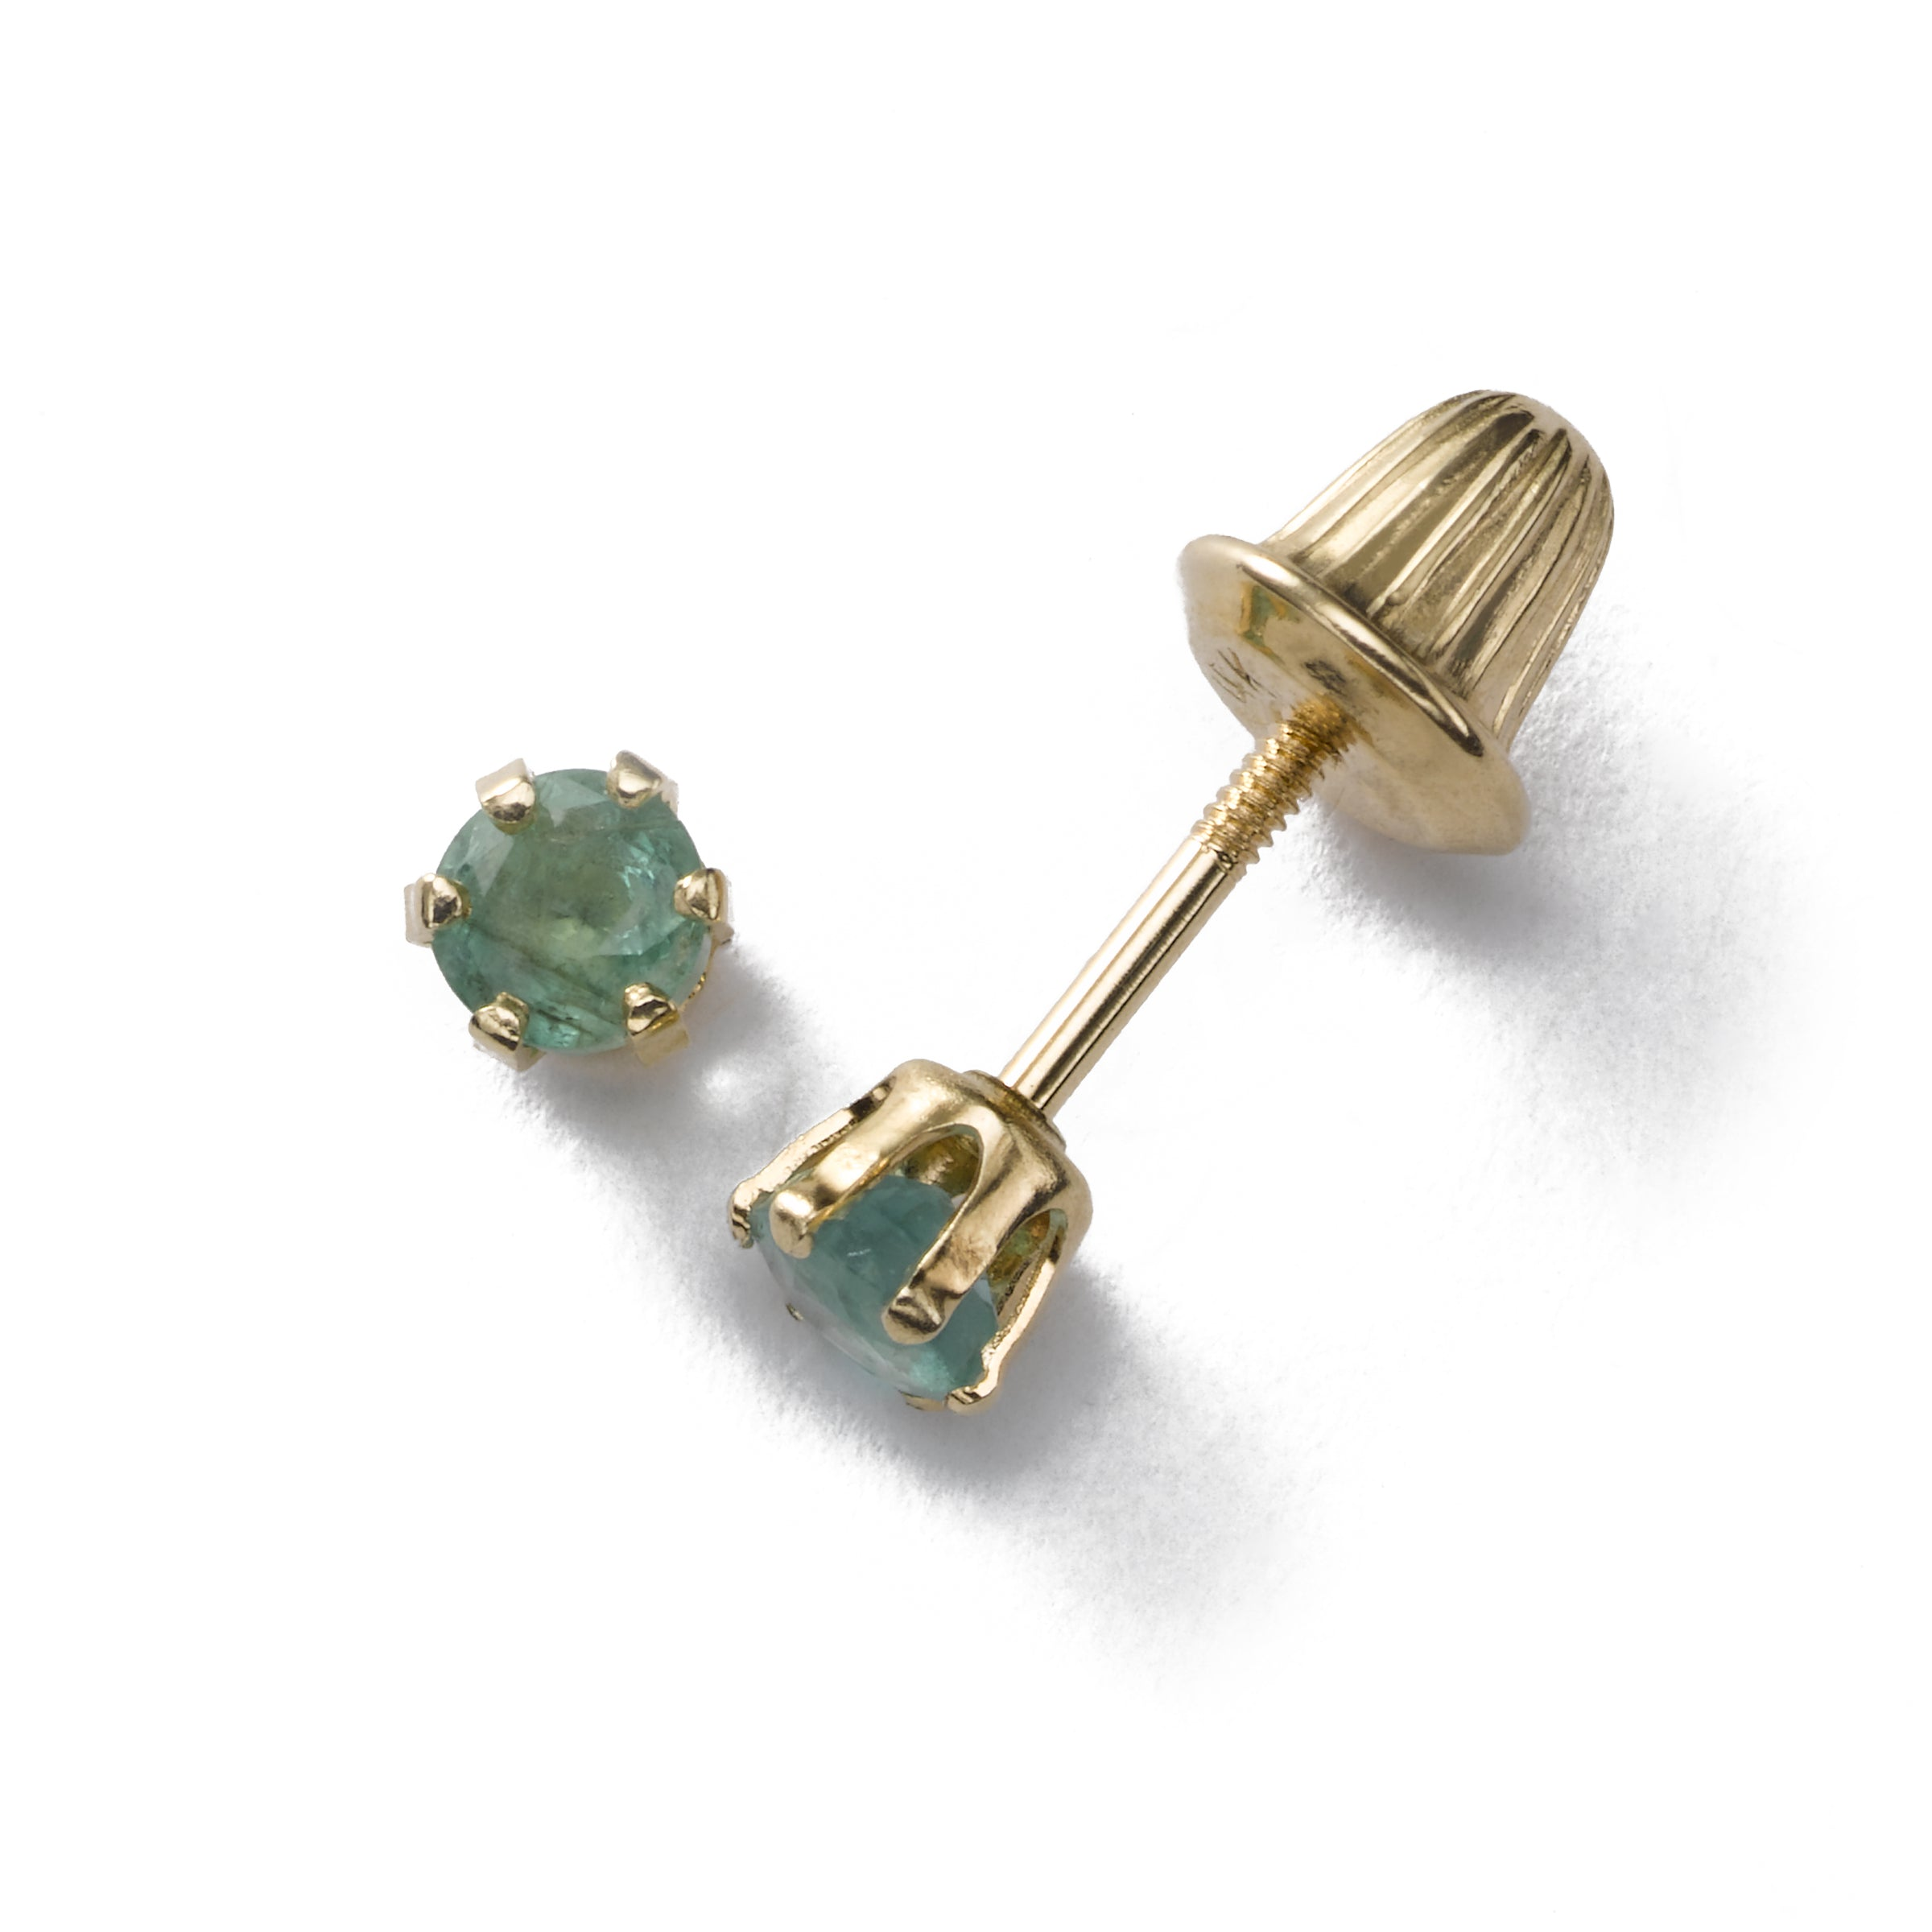 Baby's 3MM Emerald, Birthstone Stud, 14K